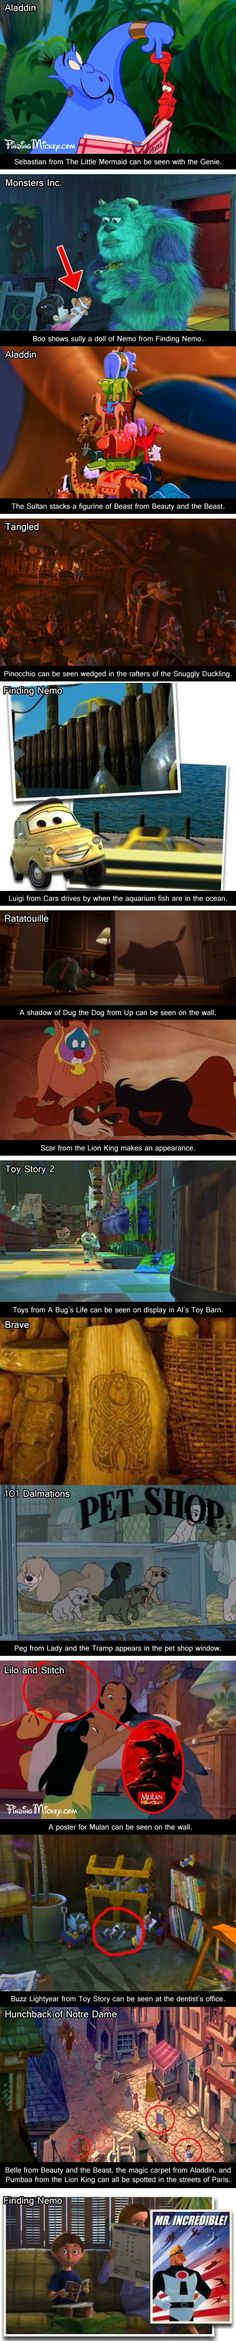 Characters showing up in other Disney movies. 25 Signs You Grew Up With Disney | Things for Geeks